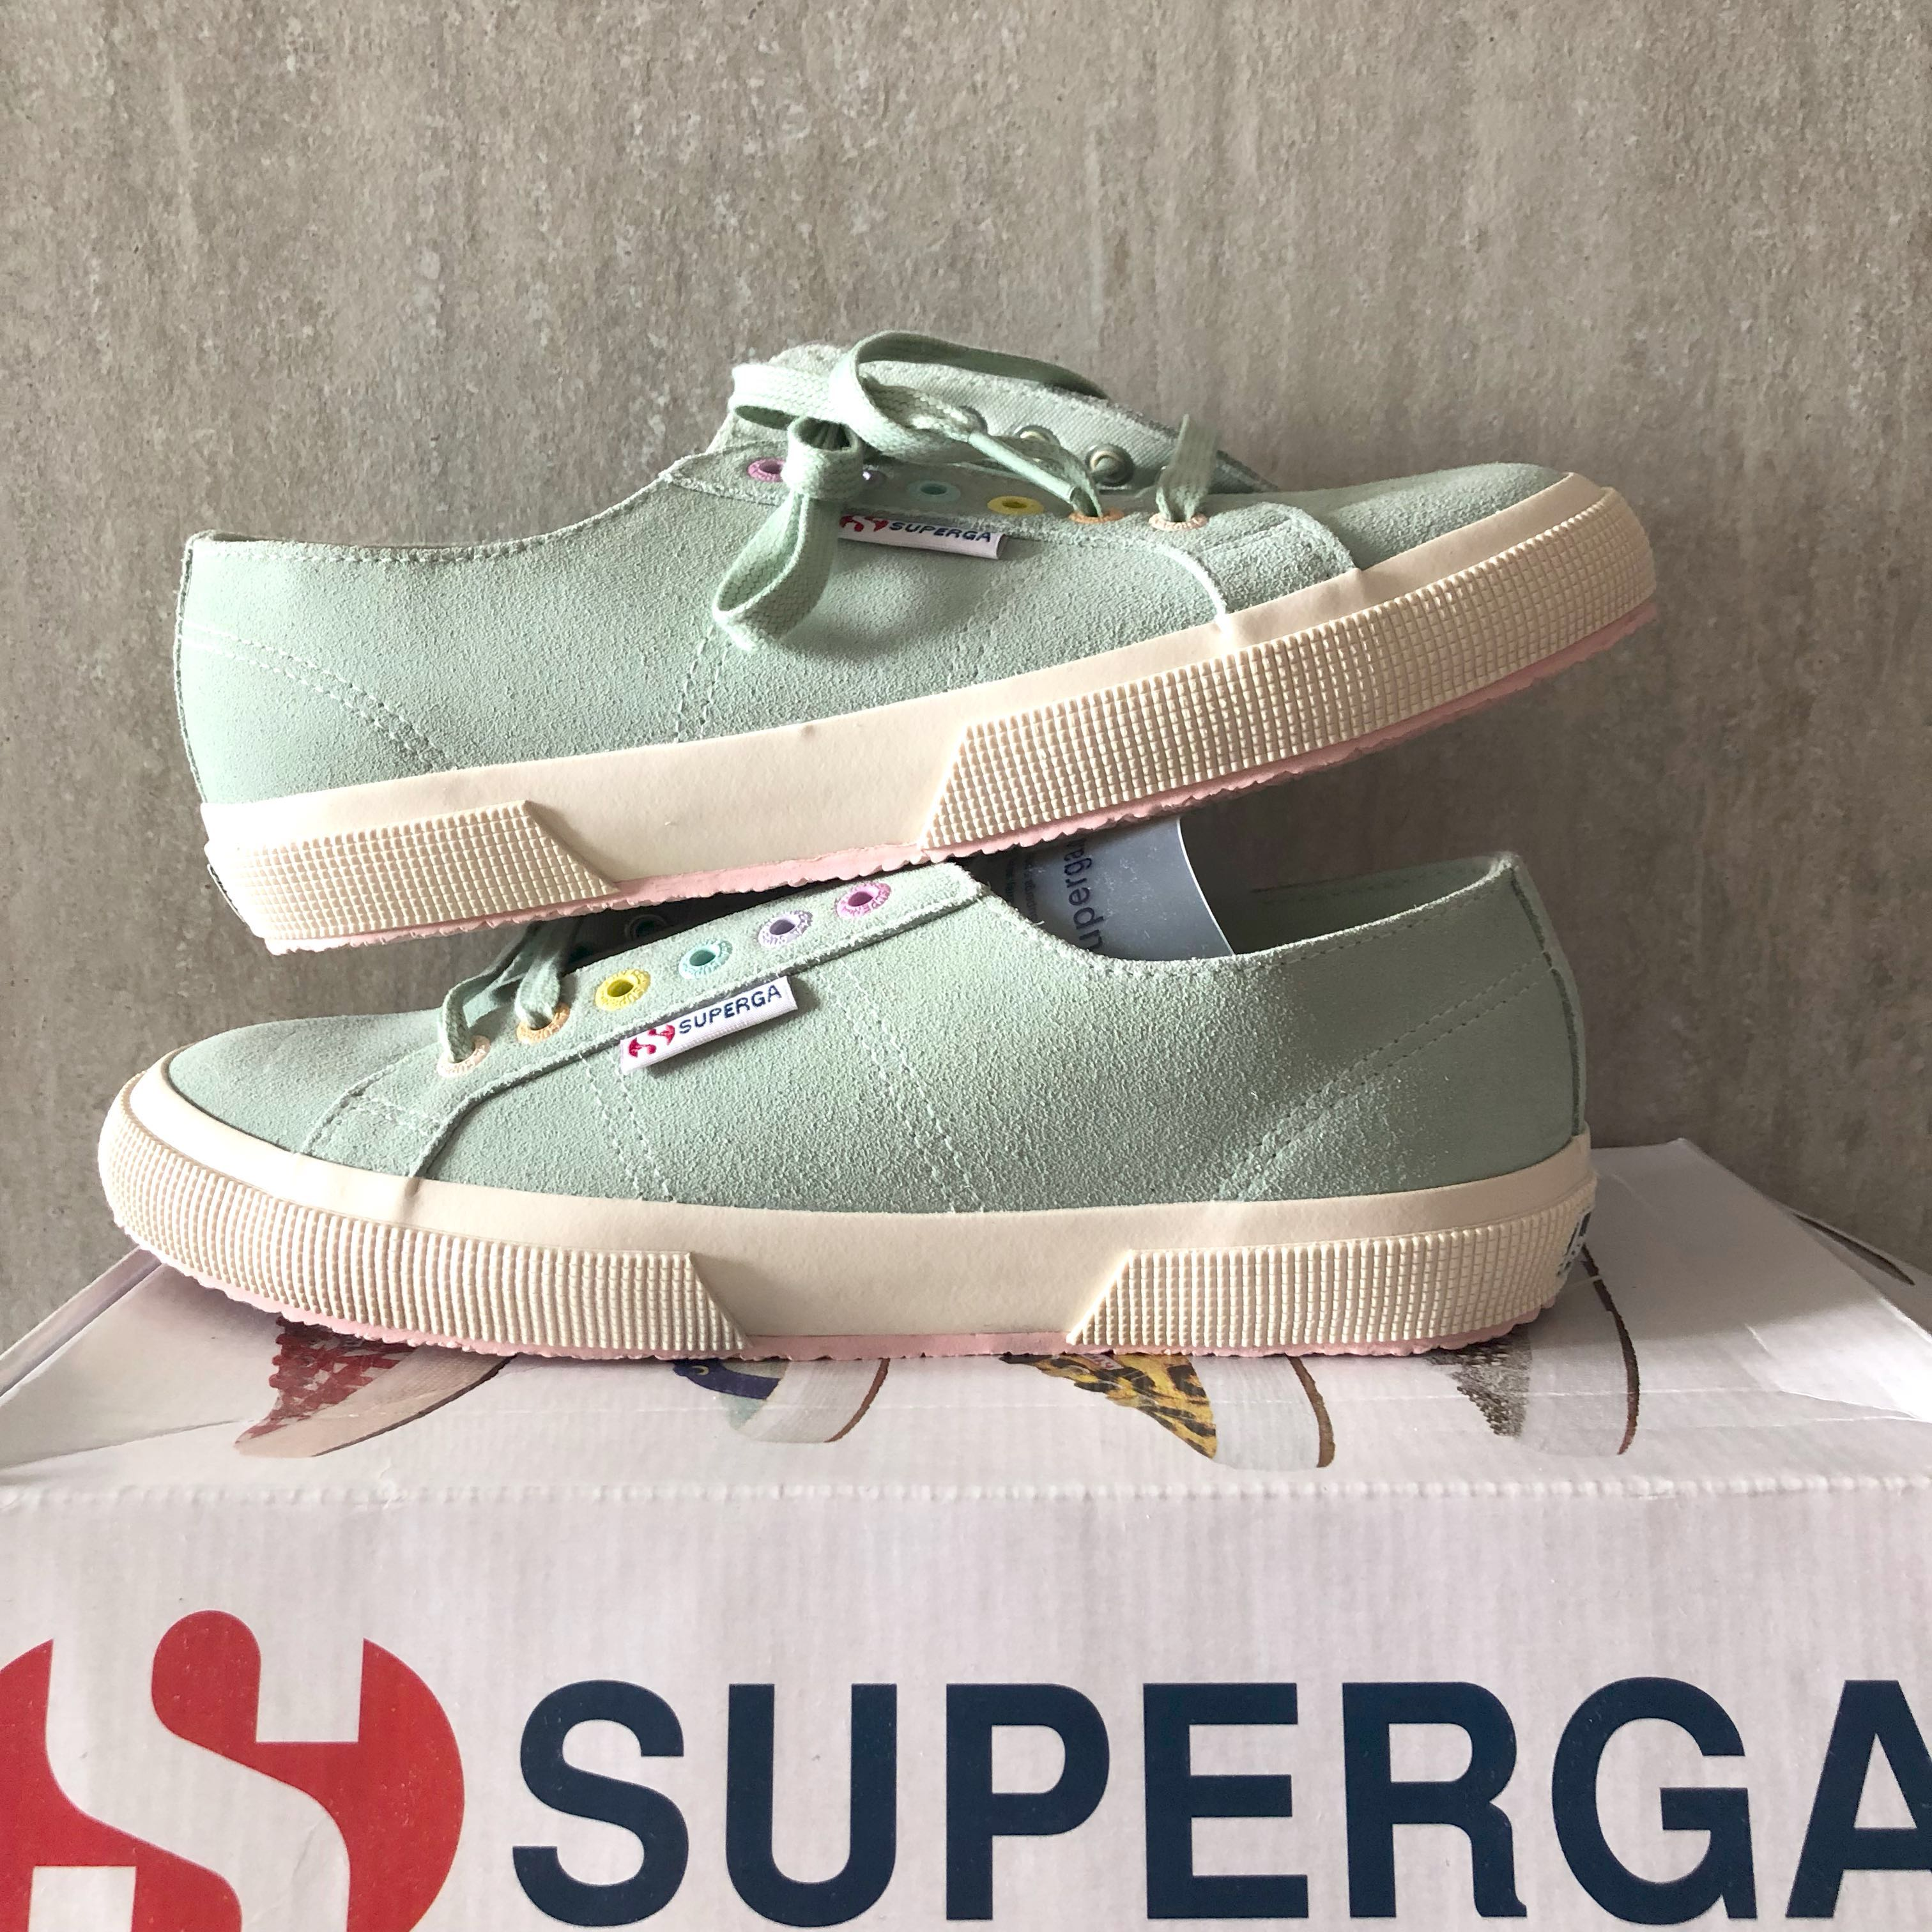 5c7b66828481 BNIB Superga Cotu mint multi colours sneakers men s women s US 8.5 ...